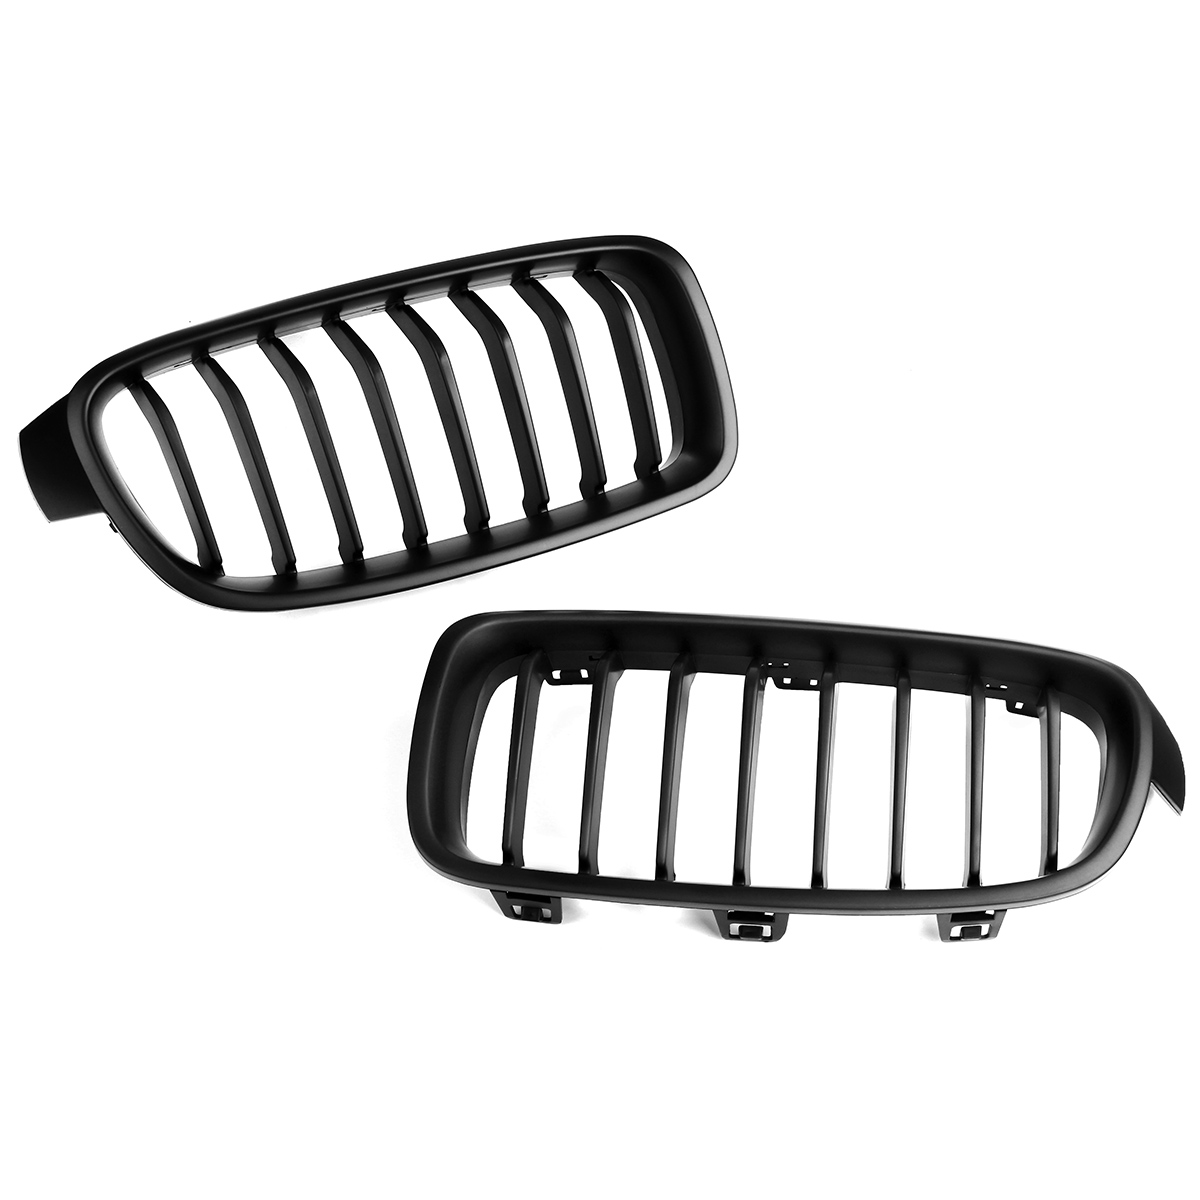 1pair matte gloss carbon black m color front kidney grill grilles BMW F30 M3 1pair matte gloss carbon black m color front kidney grill grilles for bmw f30 f31 f35 3 series 2012 2013 2014 2015 2016 2017 in racing grills from